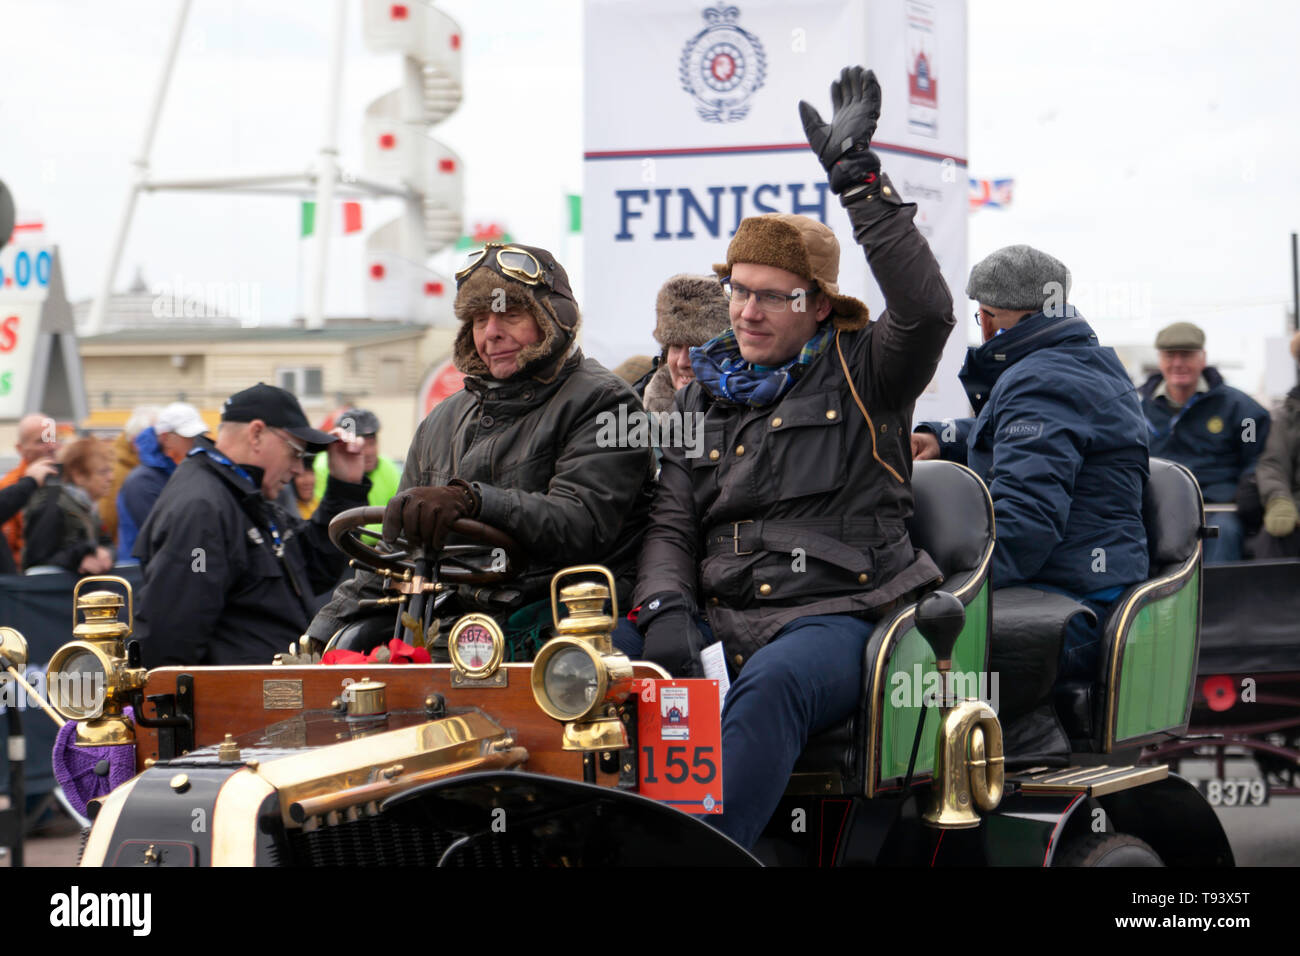 Mr Cliff Jowsey driving his 1902 Renault, across the finishing line in the 2018 London to Brighton Veteran Car Run Stock Photo